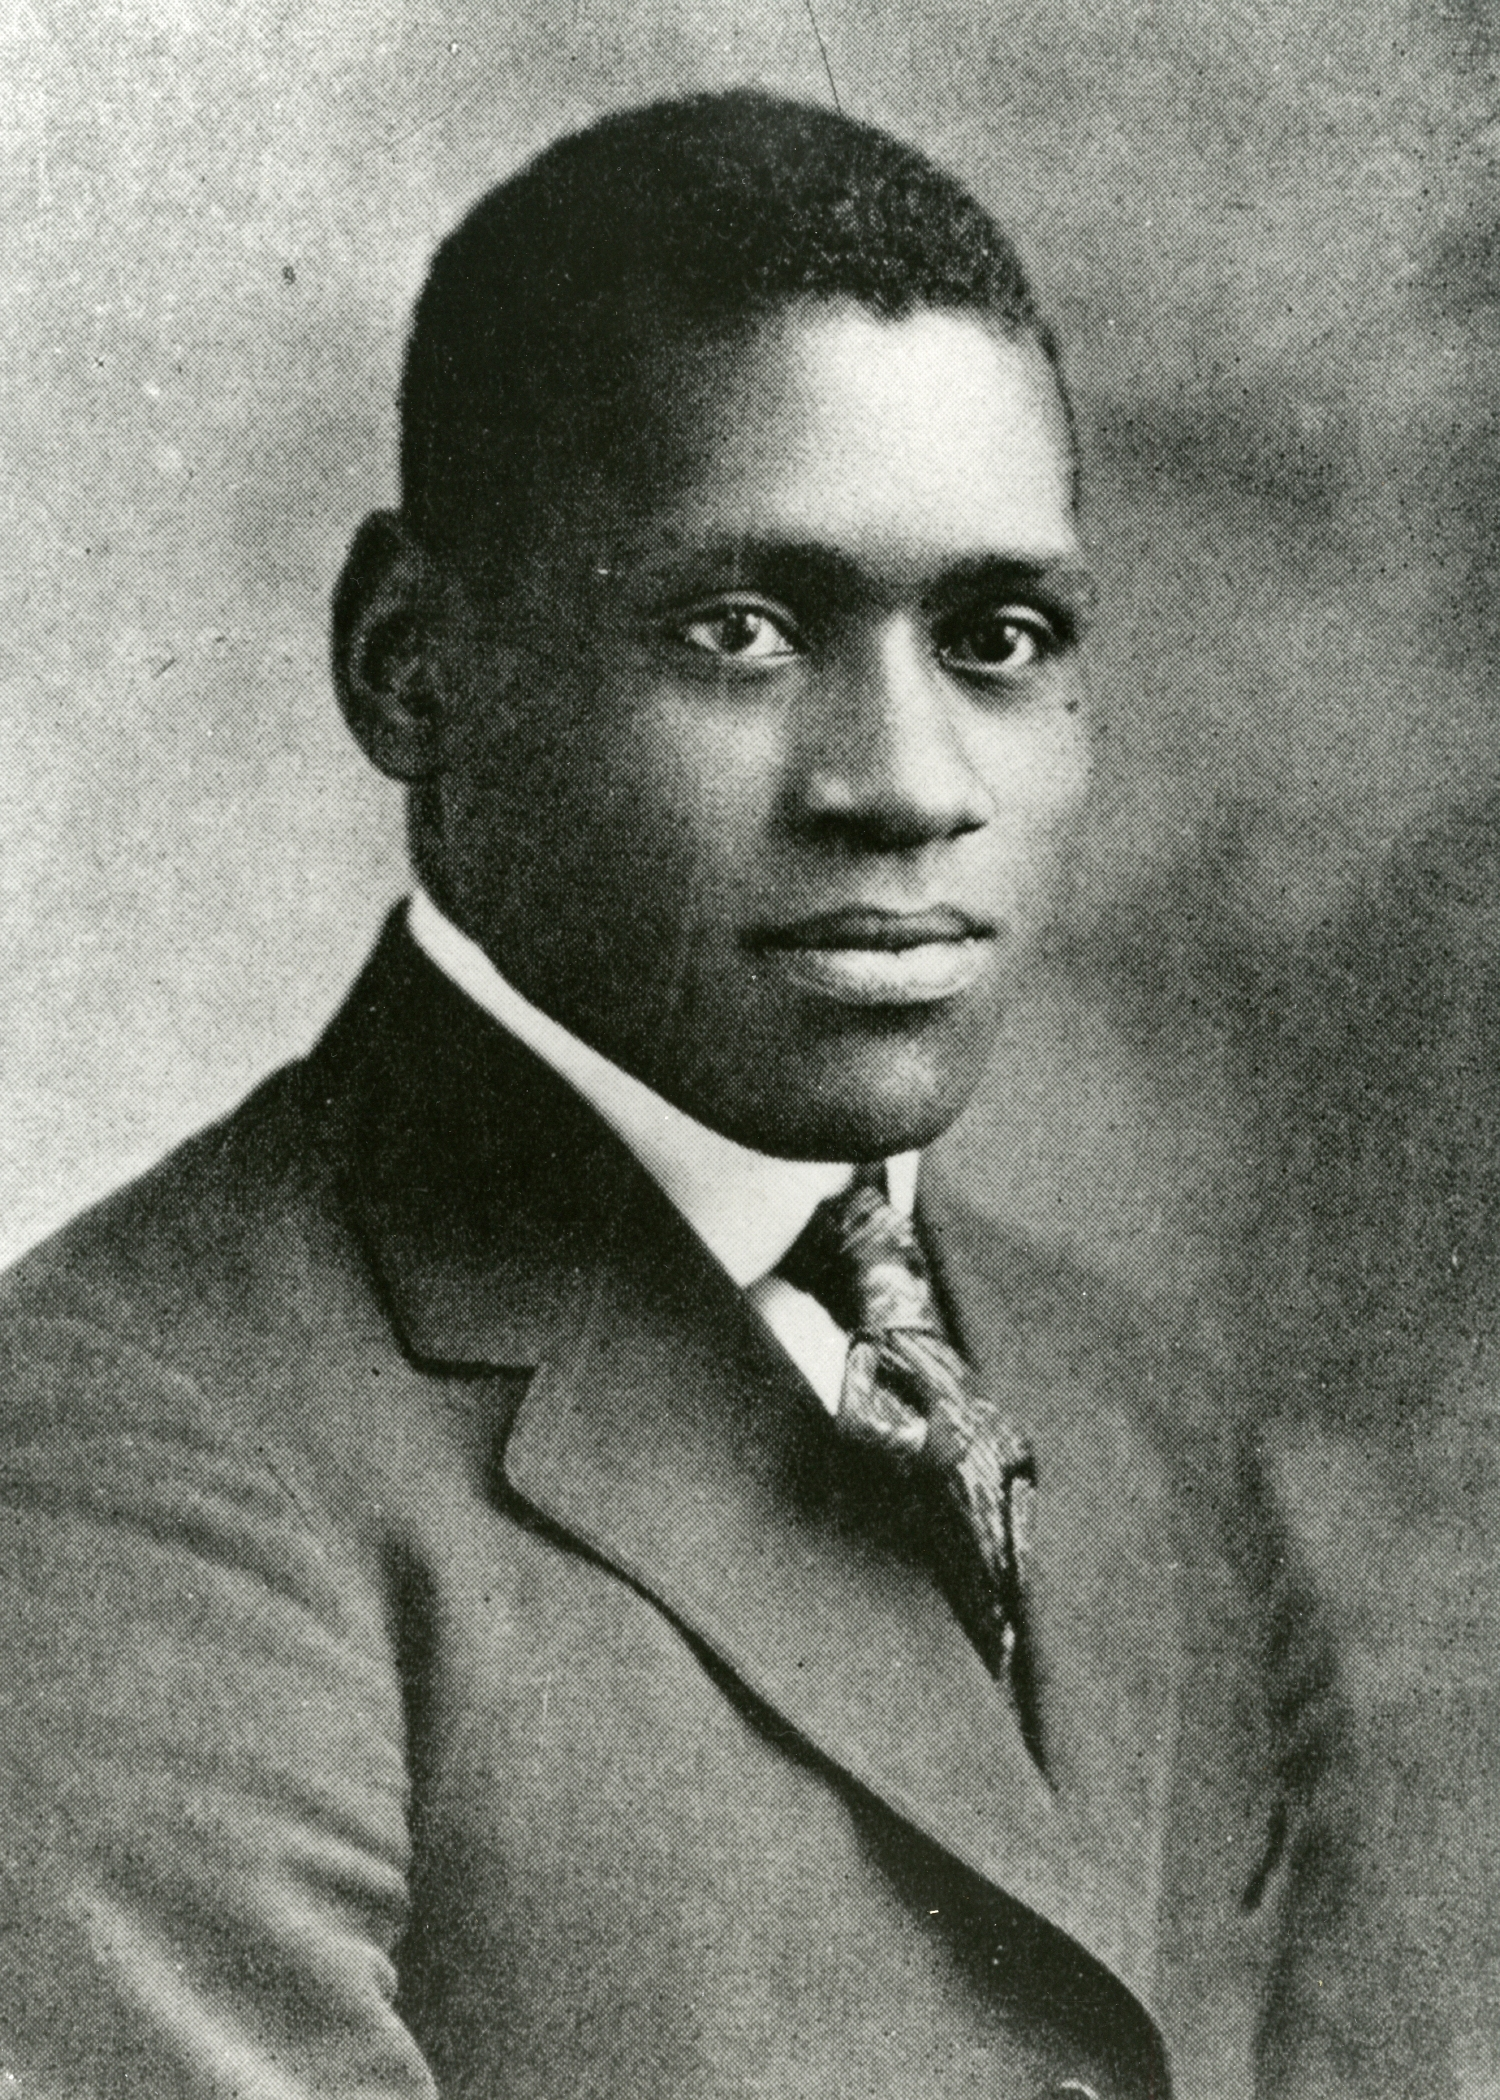 a biography of paul robeson an african american athlete singer actor and civil rights advocate